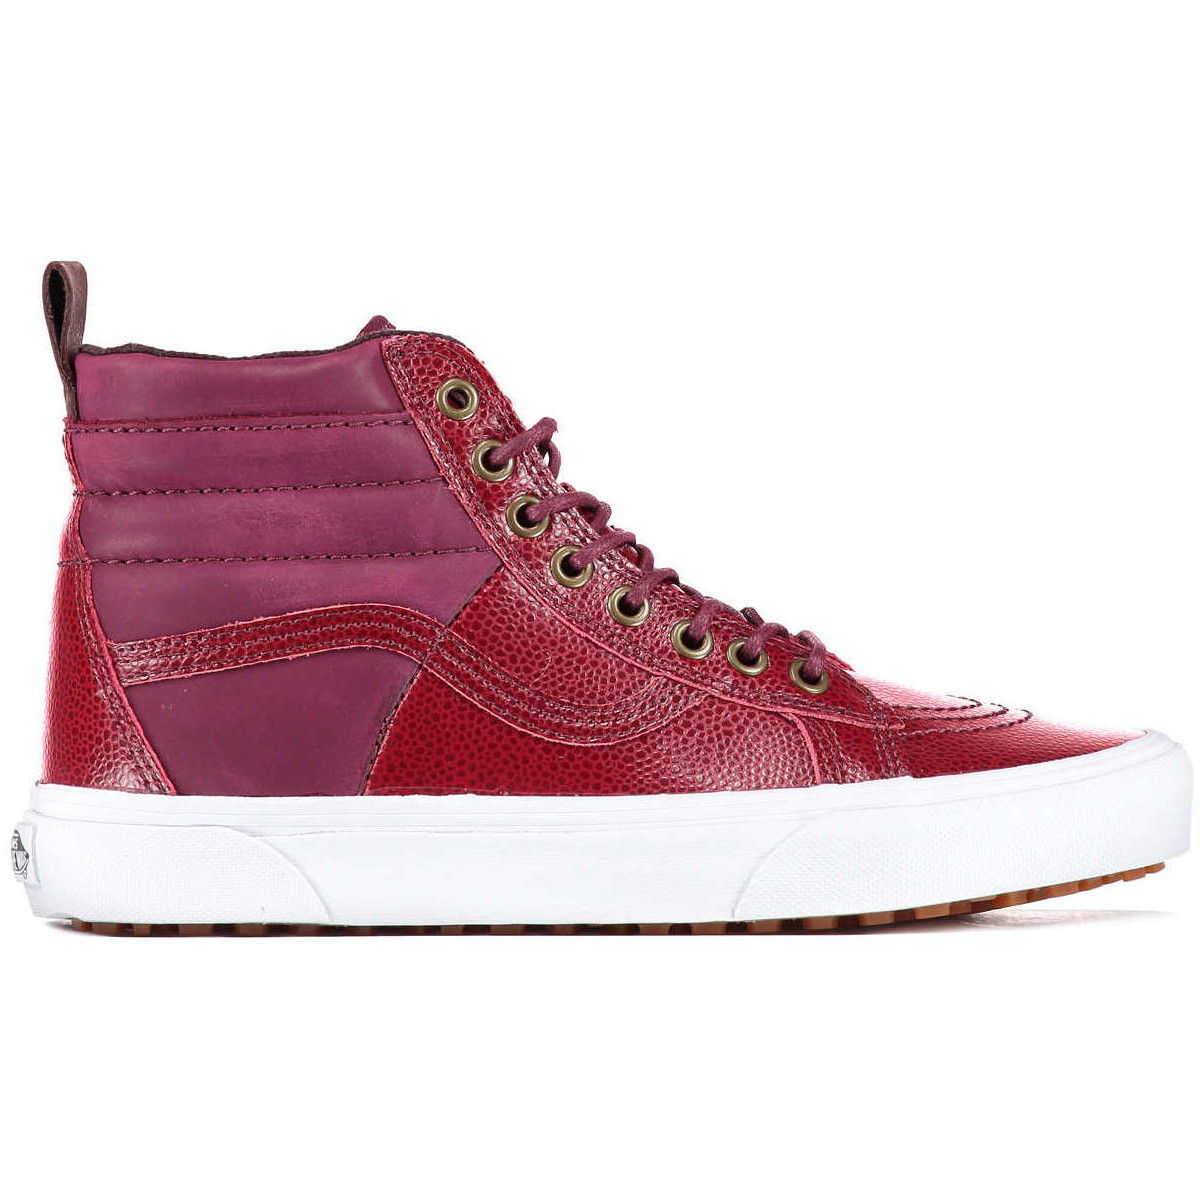 vans baskets sk8 h 46 mte cuir bordeaux femme bordeaux chaussures basket montante femme 95 83. Black Bedroom Furniture Sets. Home Design Ideas